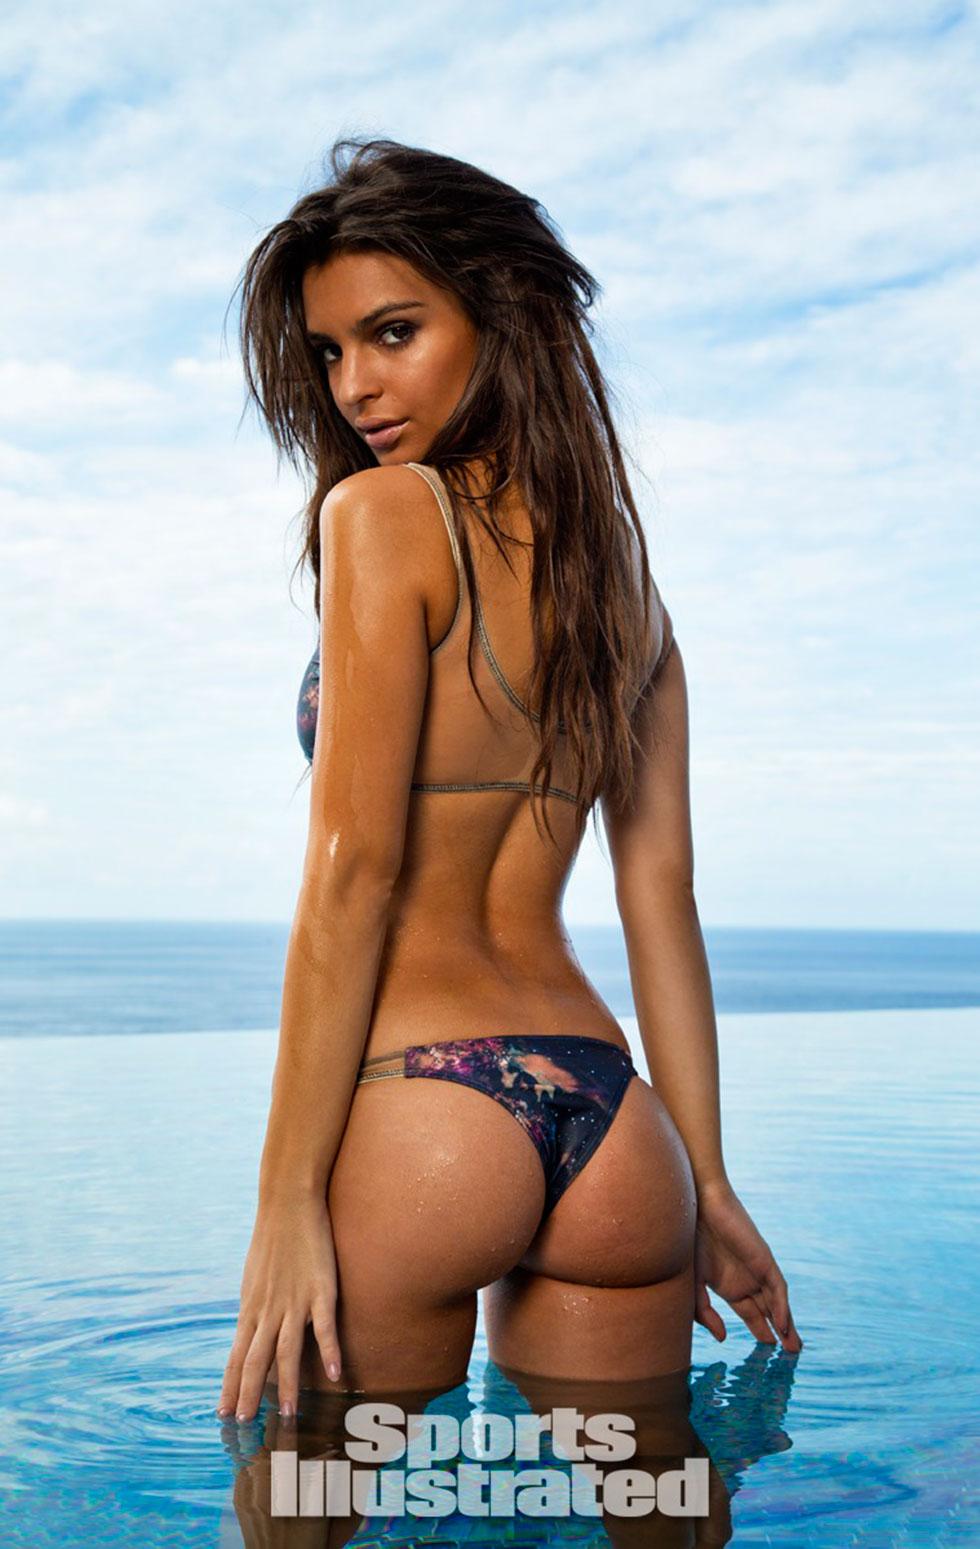 Emily-Ratajkowski-for-Sports-Illustrated-Swimsuit-Edition-2014_15